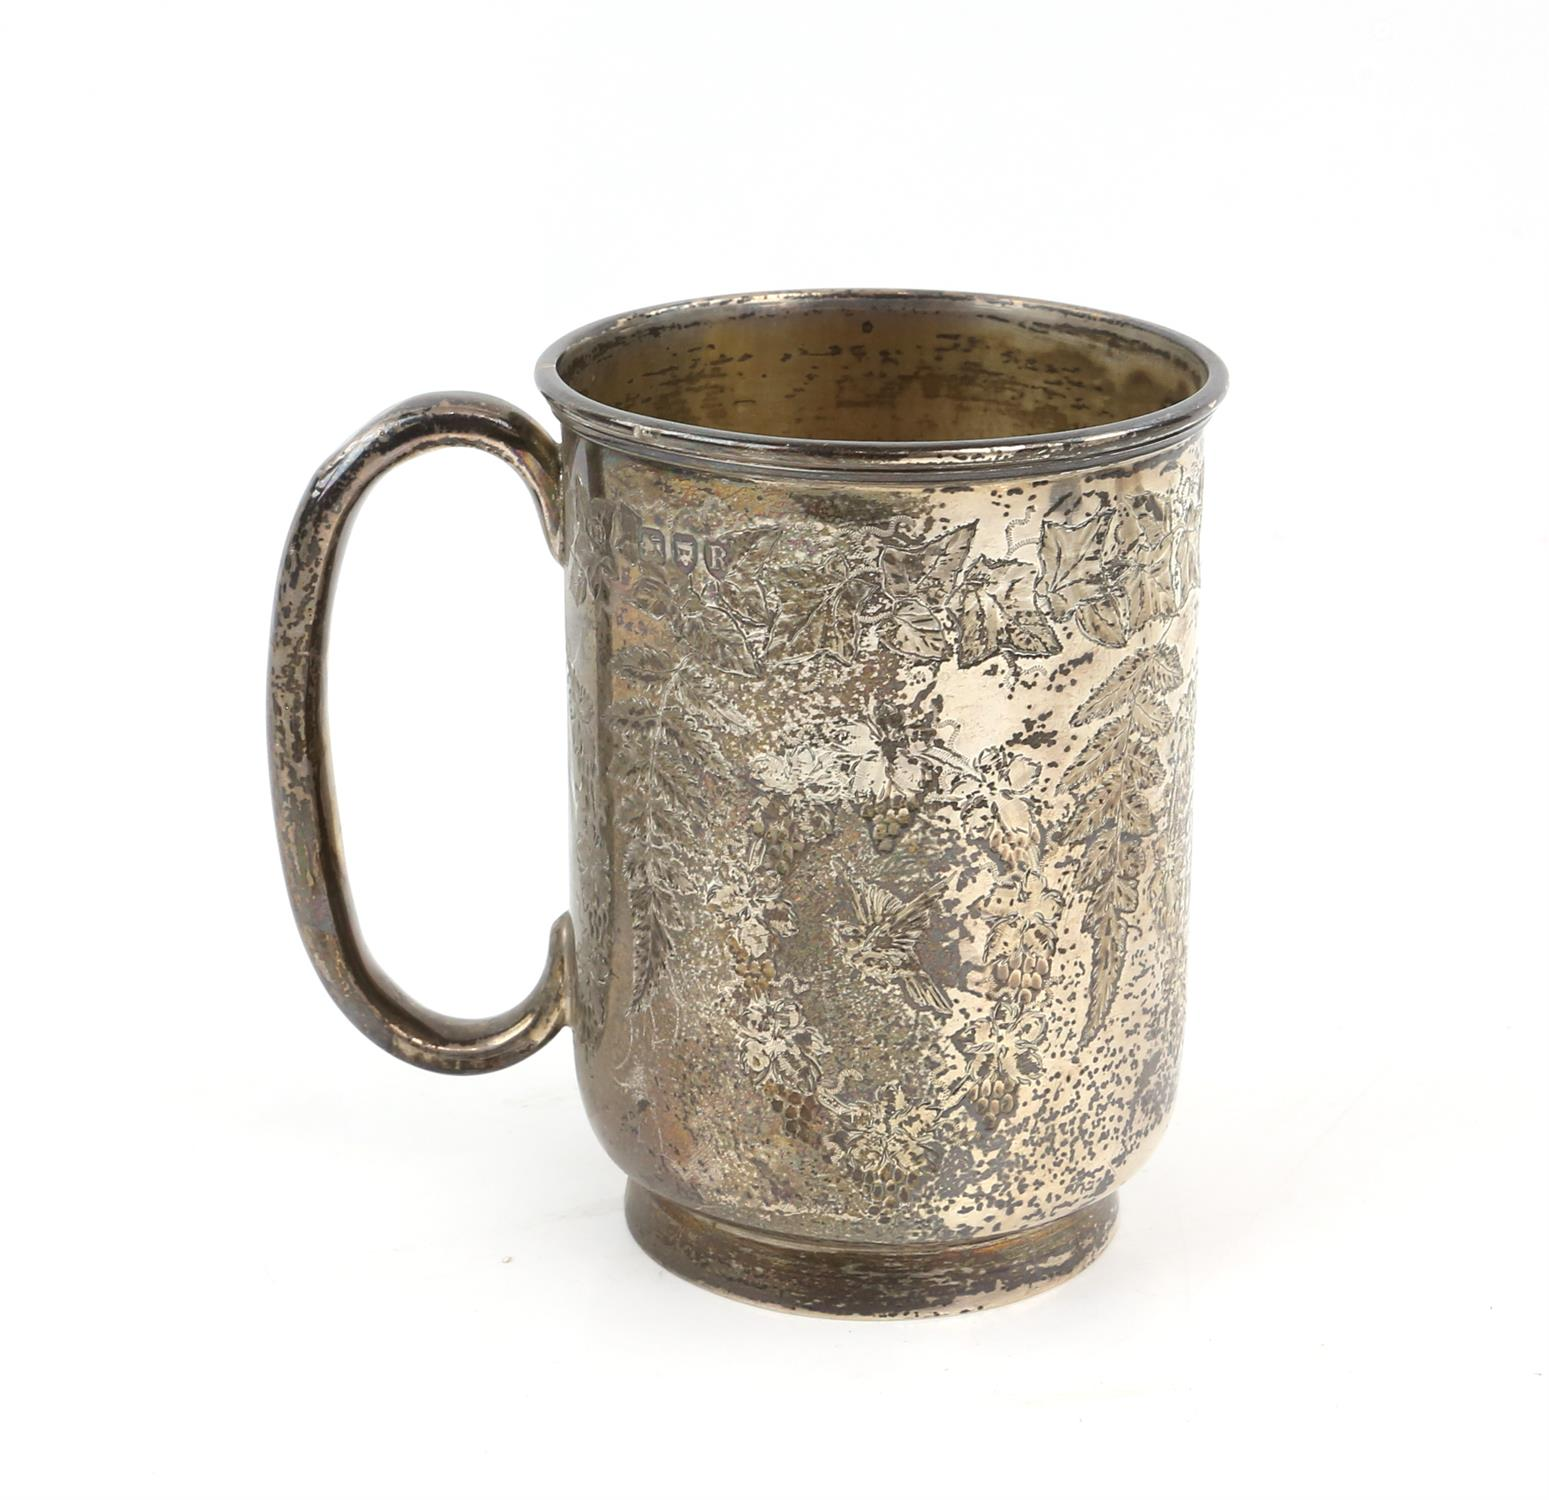 Victorian fern engraved silver mug, a silver sauce boat, a silver small trophy cup 403 grms 13 ozs - Image 7 of 10